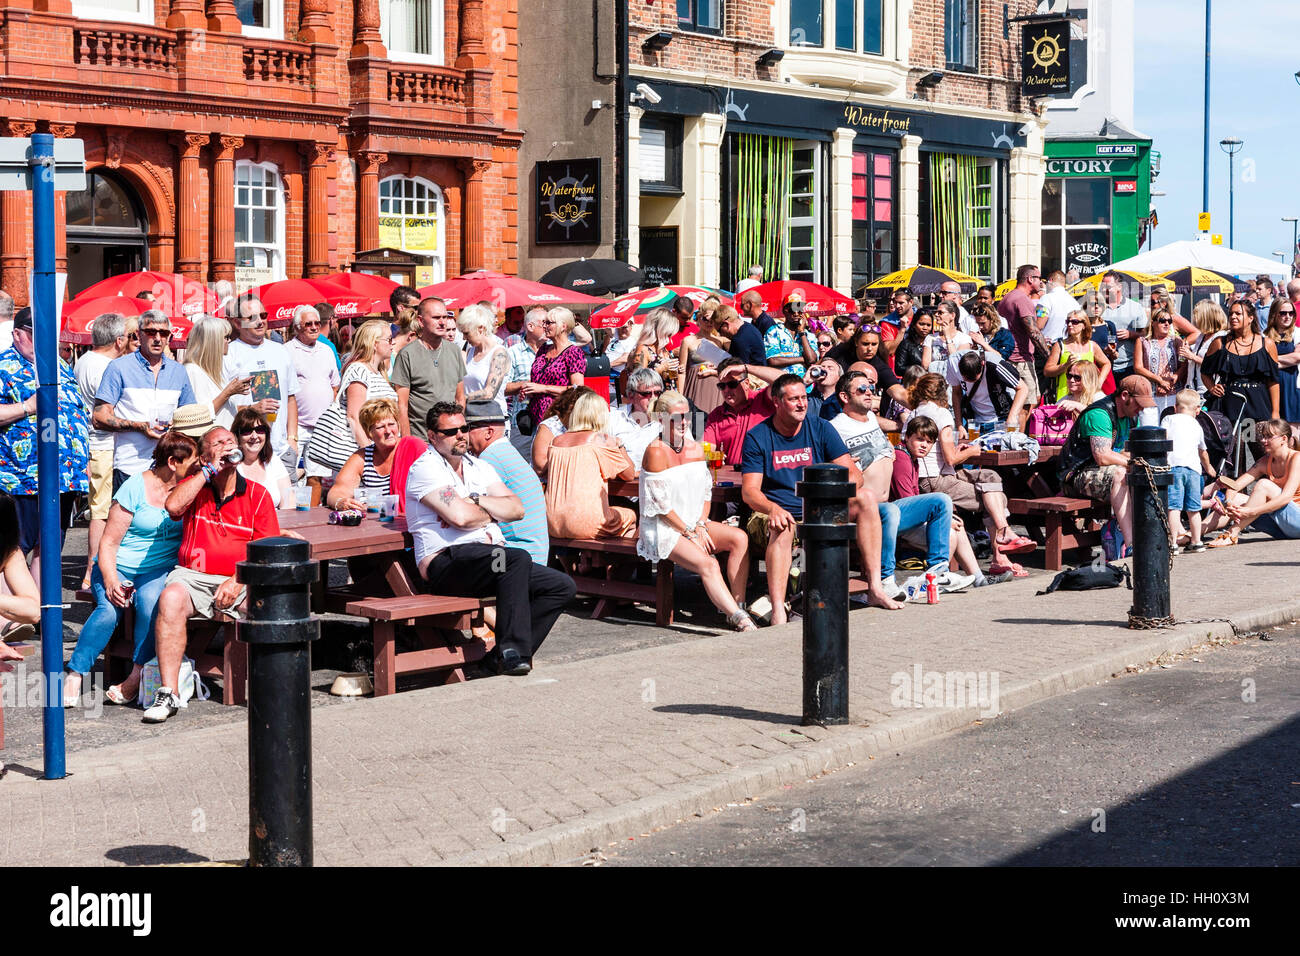 England, Ramsgate. Seafront, summer heat wave, audience, people sitting in sunshine outside bar, watching (unseen) - Stock Image